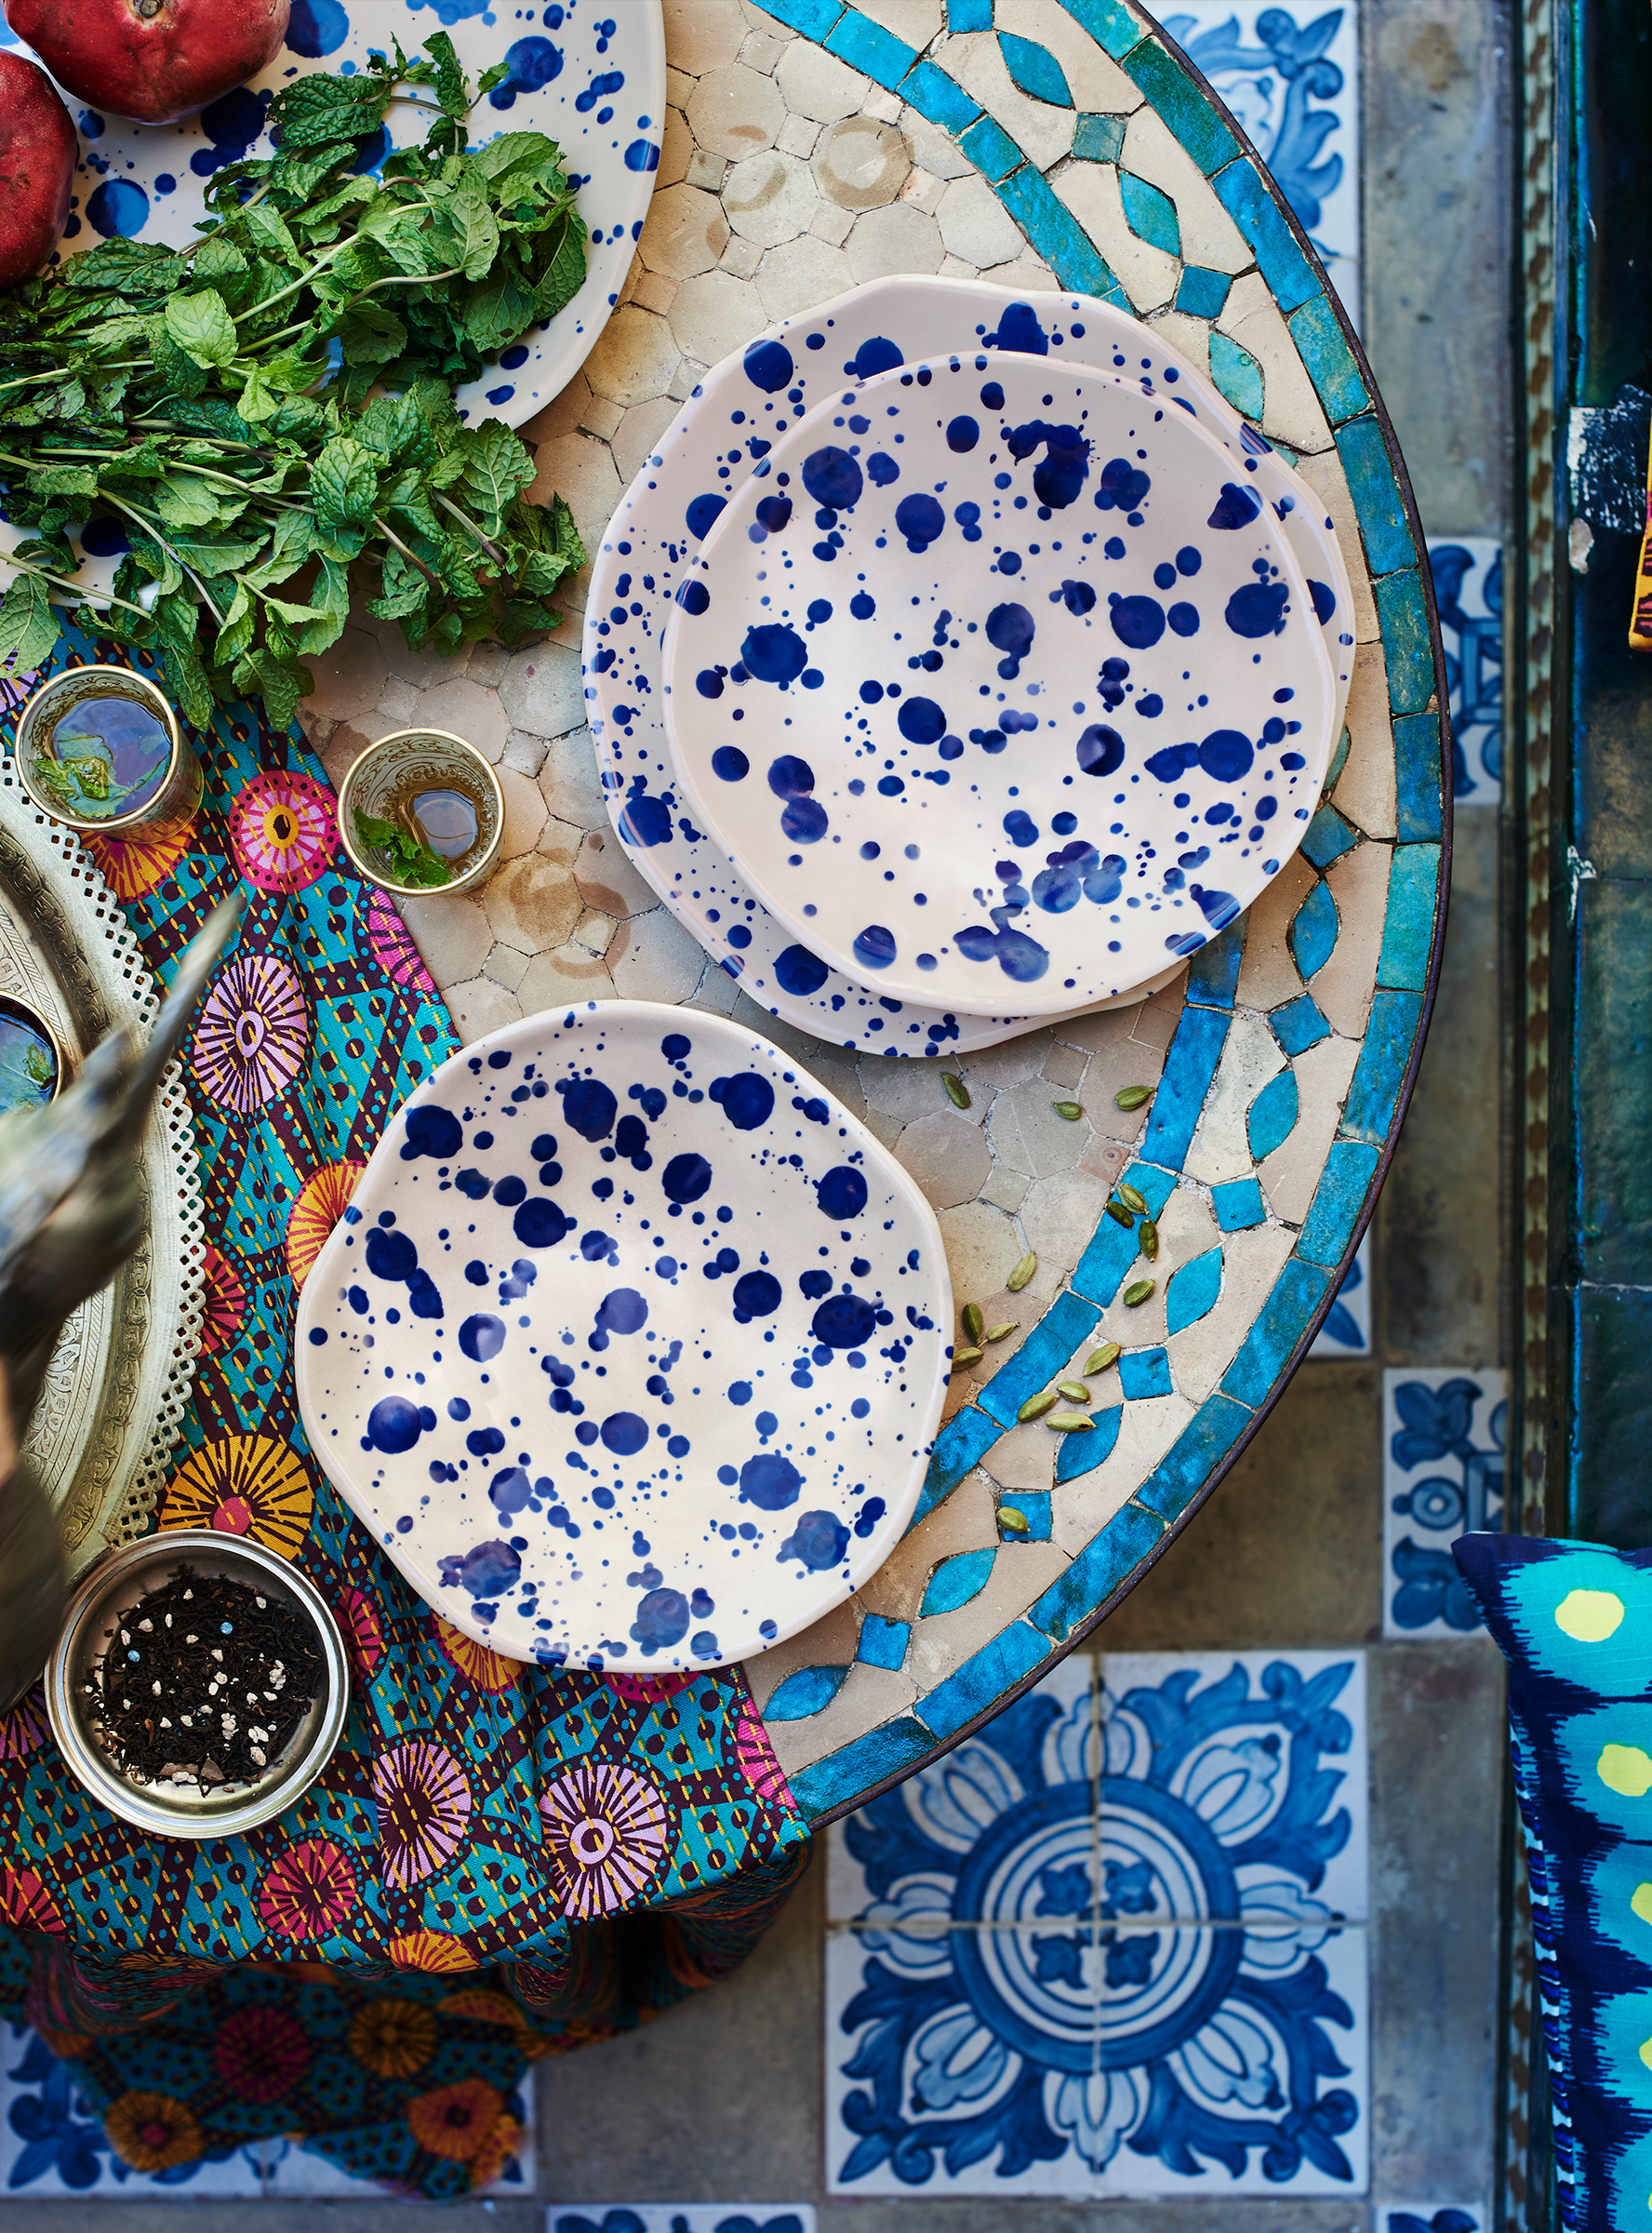 Ikea's New Collection Is Its Most Bohemian Yet — & We Kind Of Love It